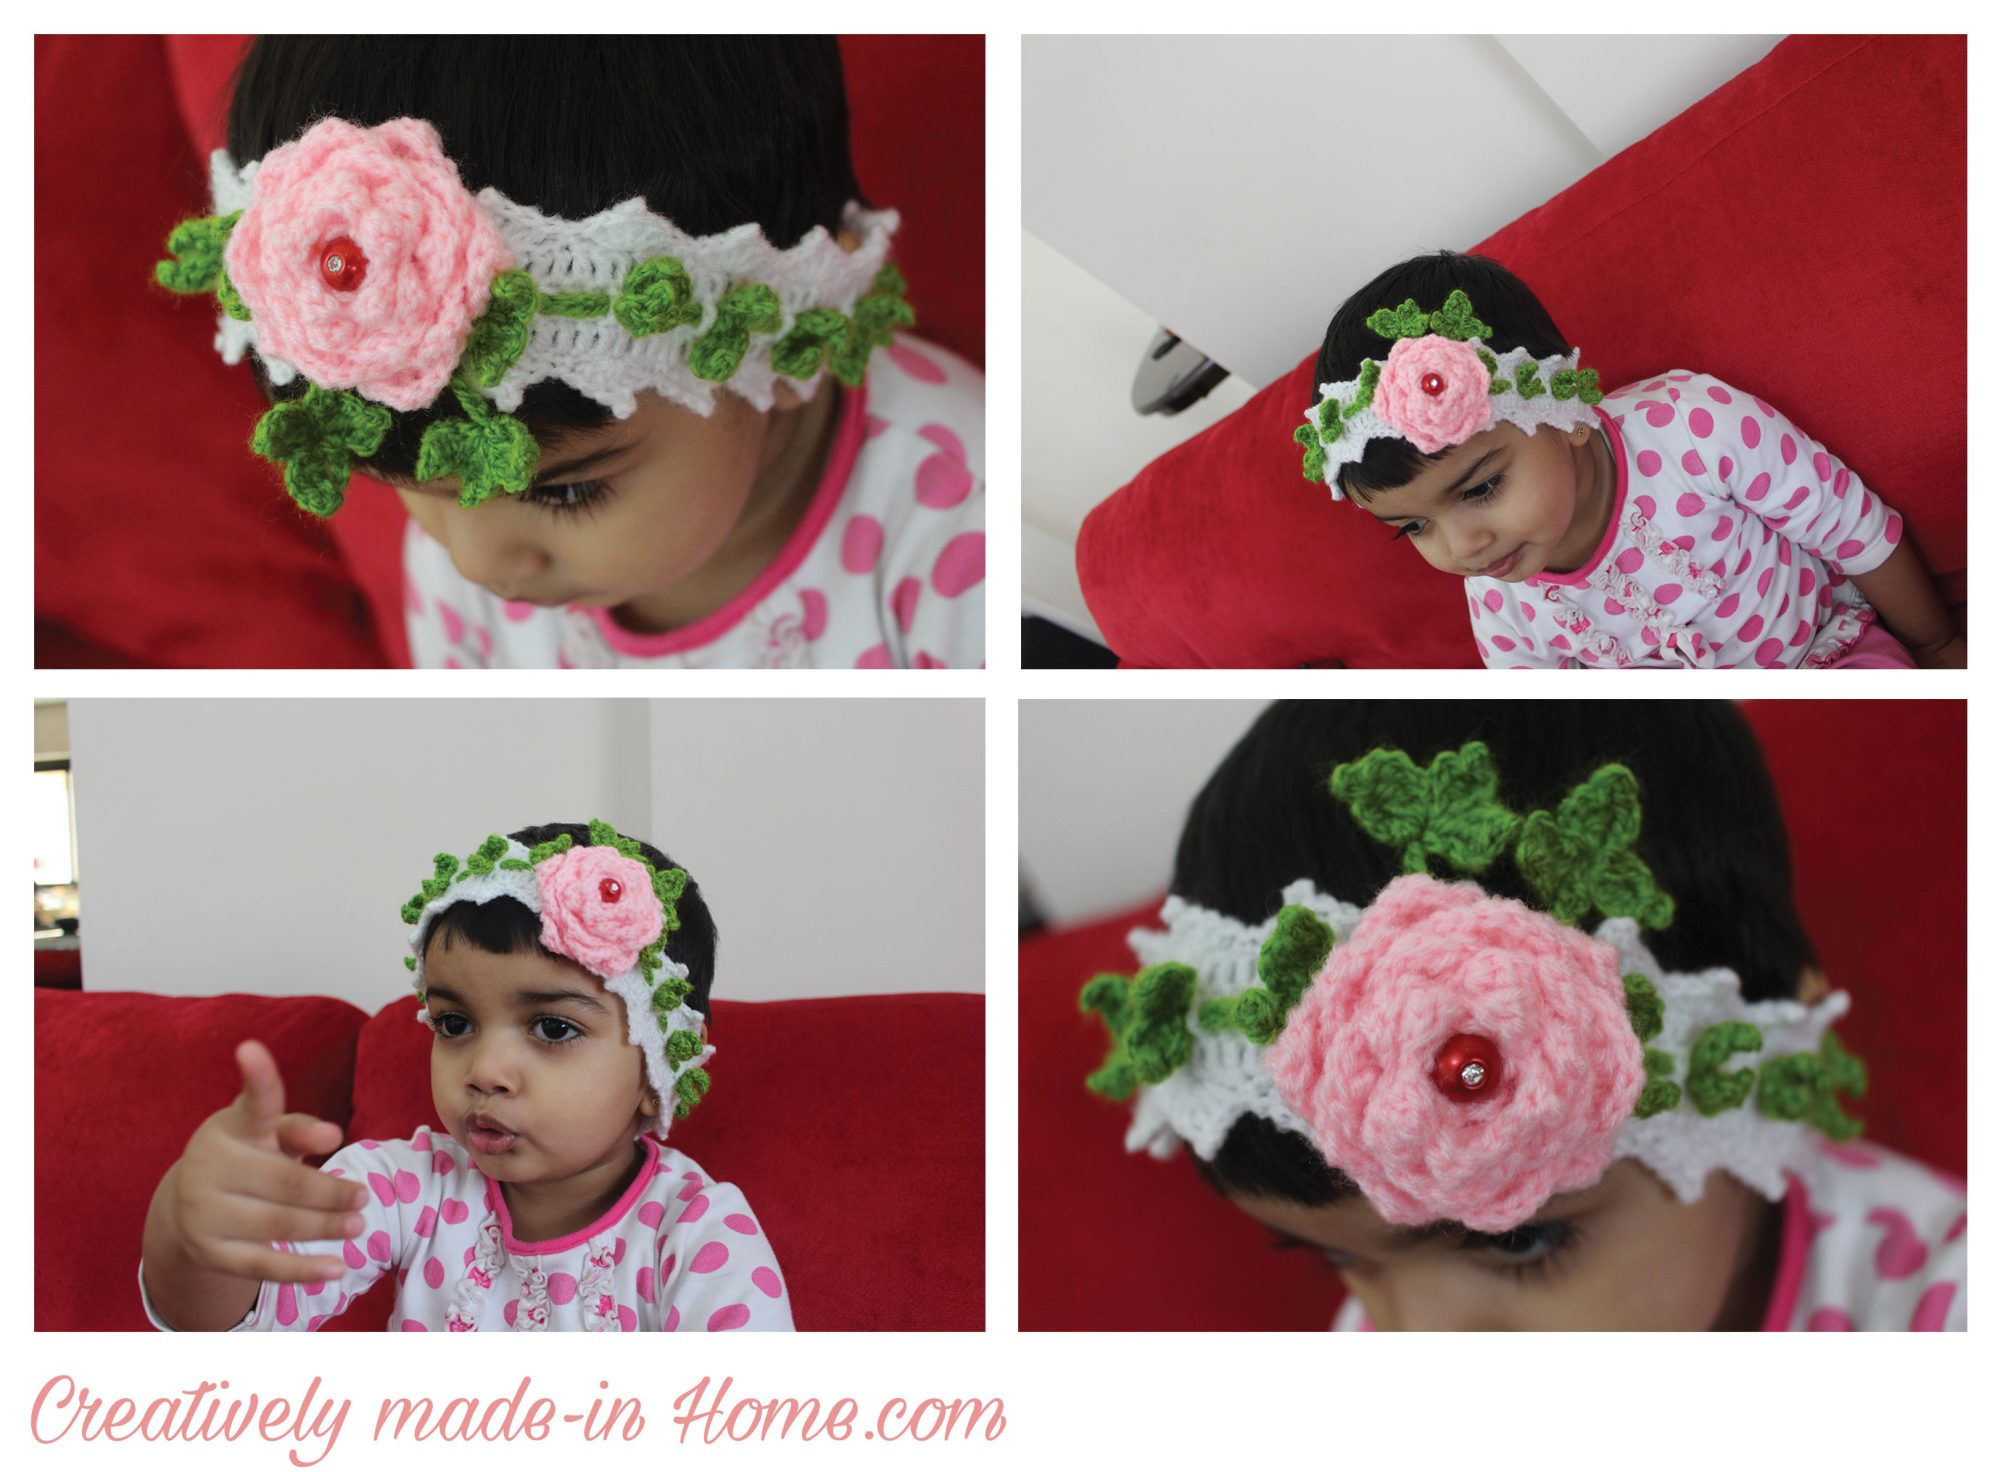 Crochet Floral Headband For Baby Creatively Made In Home